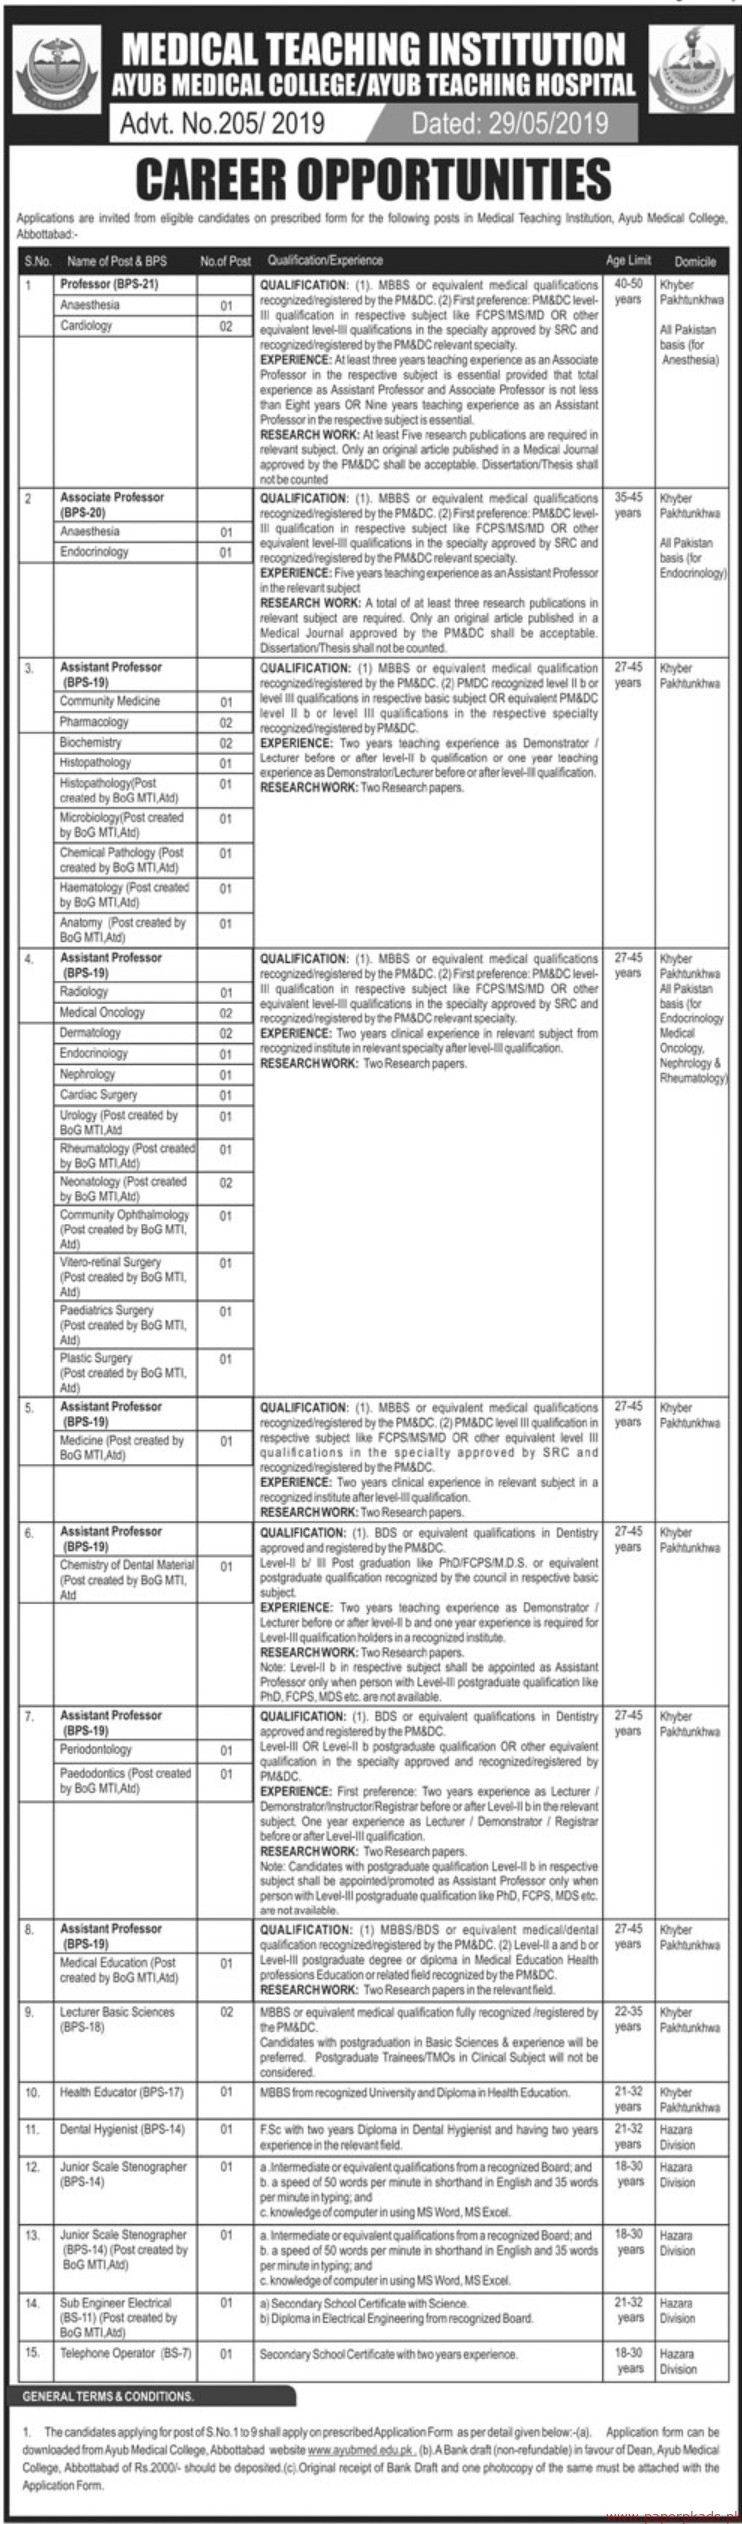 Medical Teaching Institution Ayub Medical College Jobs 2019 Latest - 1